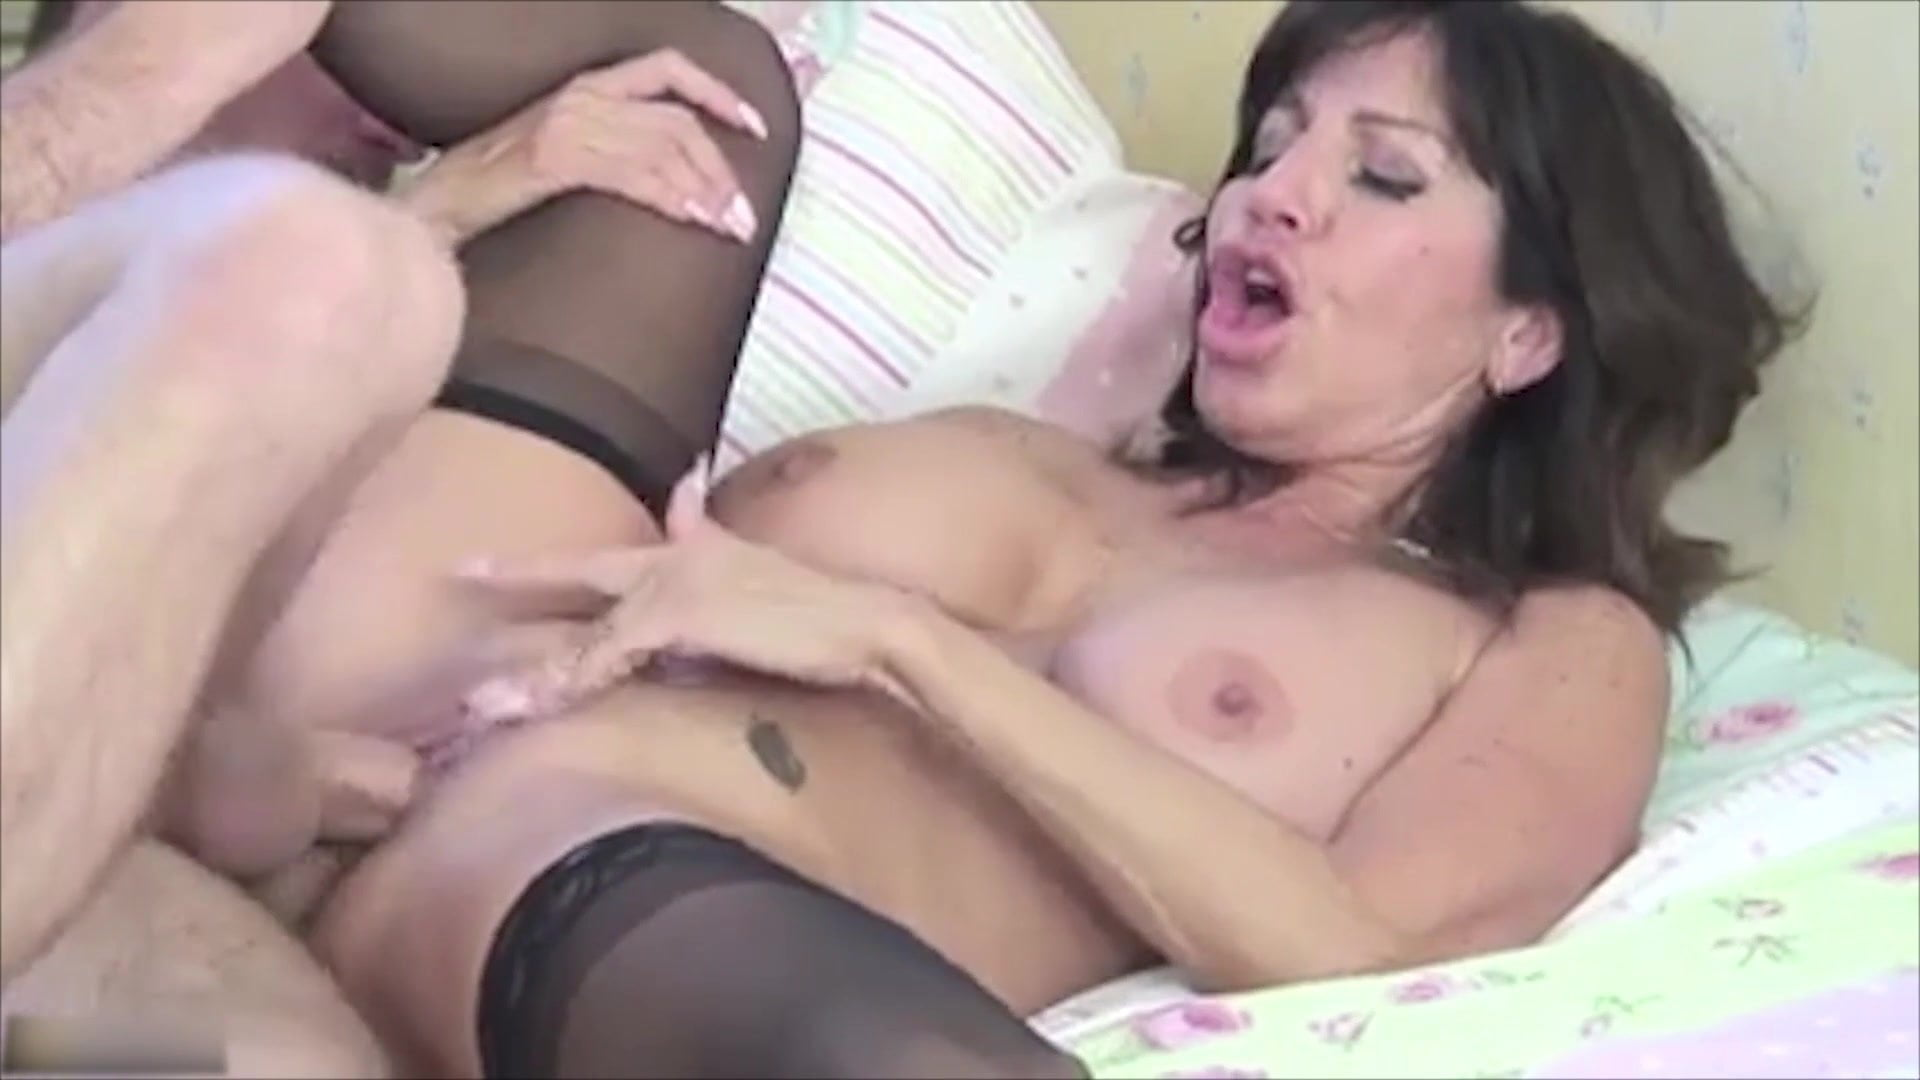 Mom Son Pounding Compilation, Free Mom Xxx Hd Porn 8D-8397